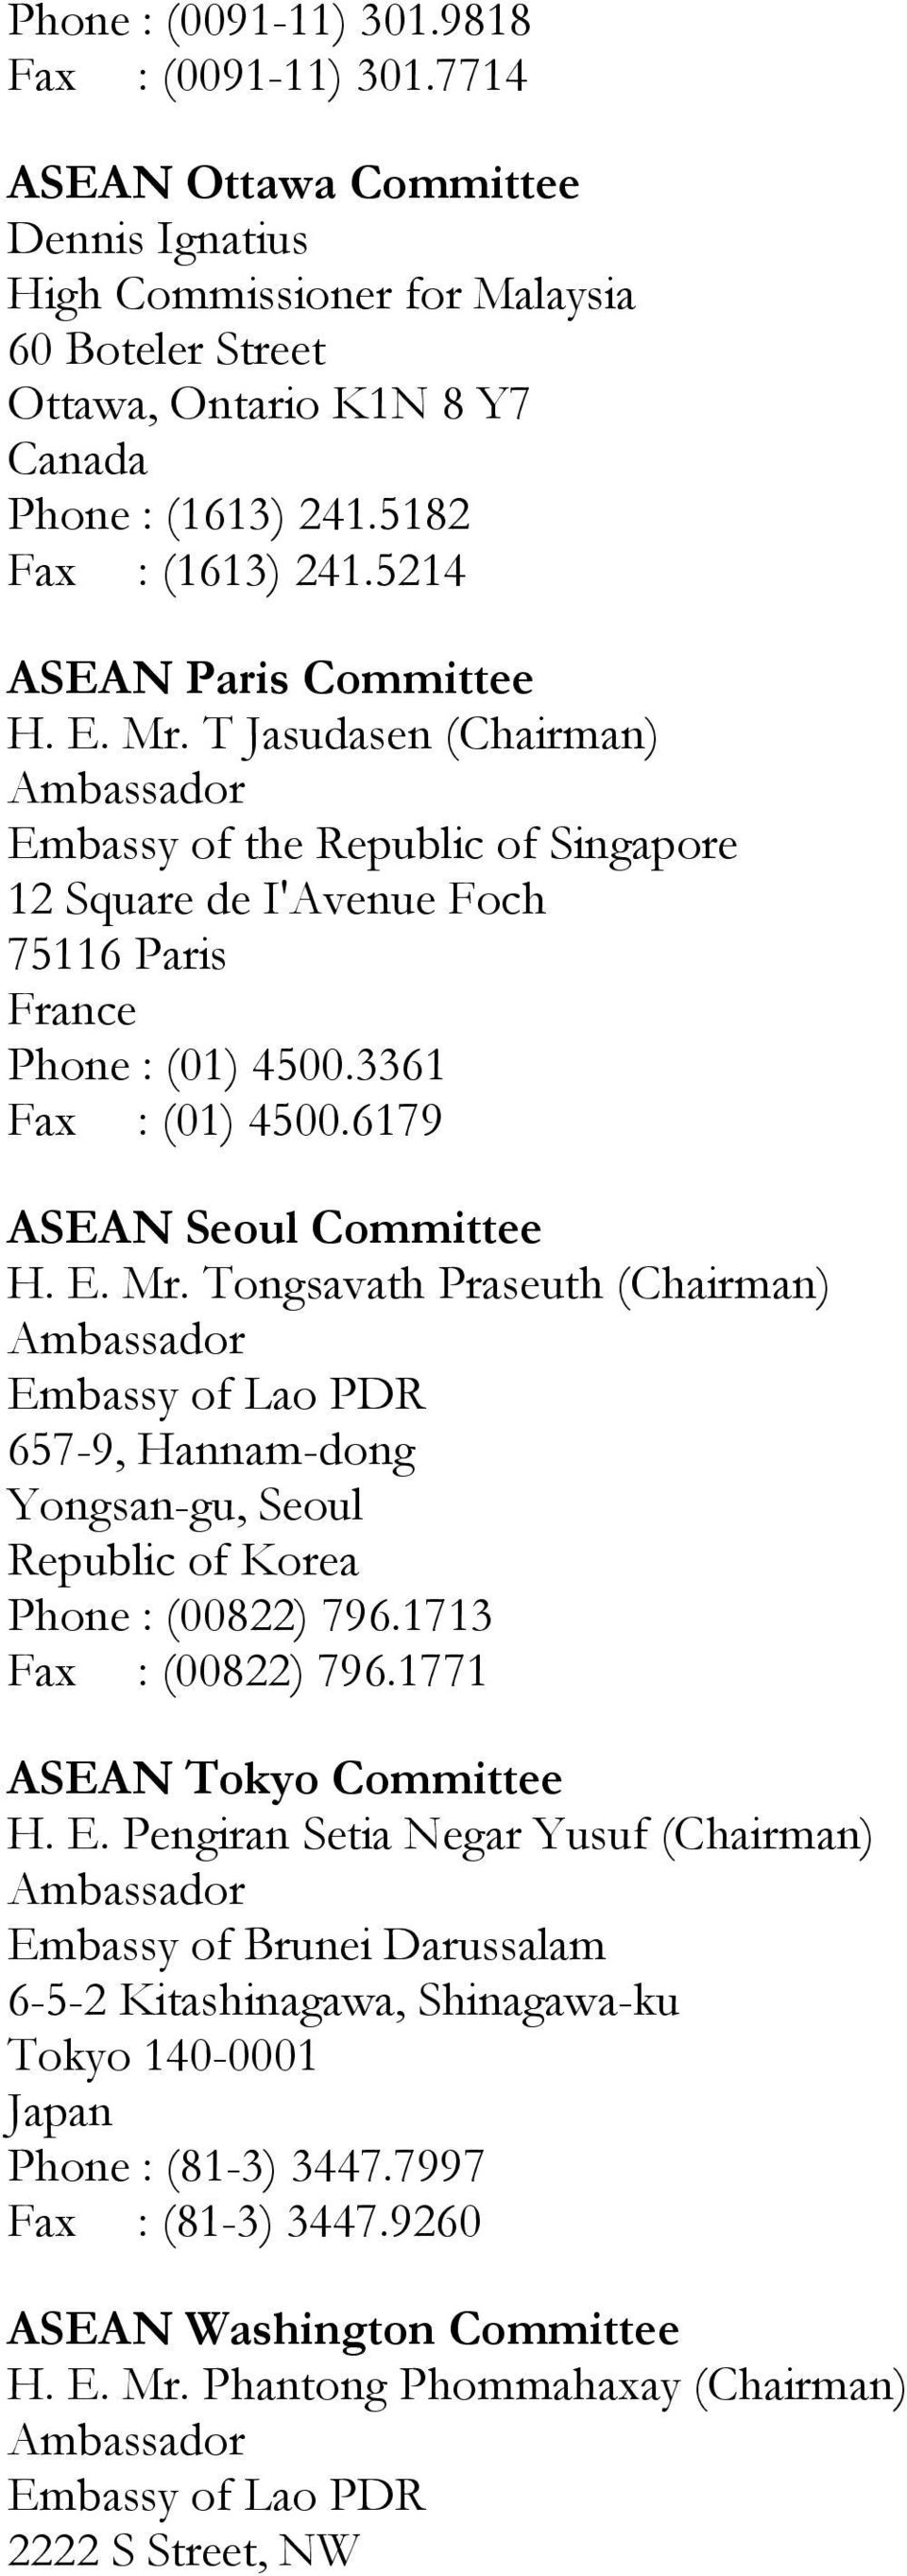 3361 Fax : (01) 4500.6179 ASEAN Seoul Committee H. E. Mr. Tongsavath Praseuth (Chairman) Embassy of Lao PDR 657-9, Hannam-dong Yongsan-gu, Seoul Republic of Korea Phone : (00822) 796.